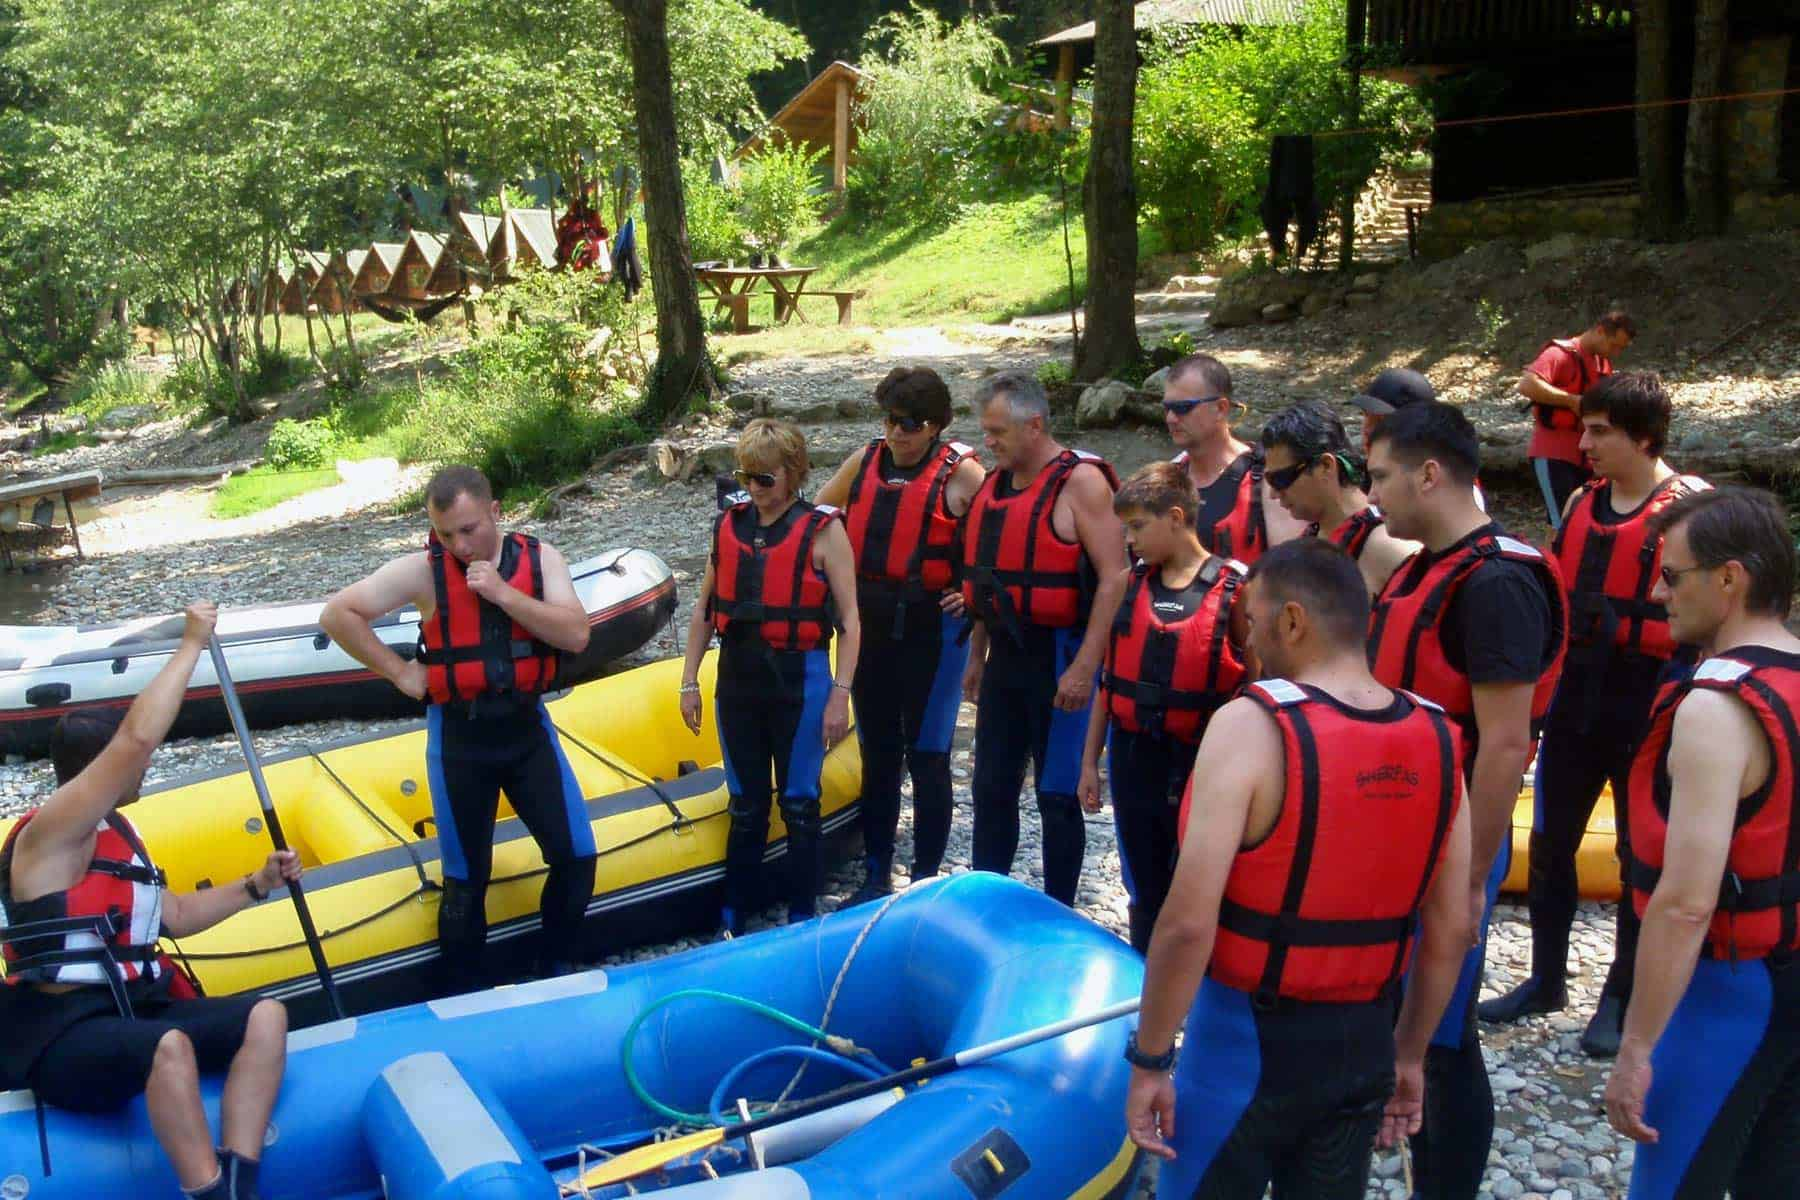 Preparation before rafting adventure begins